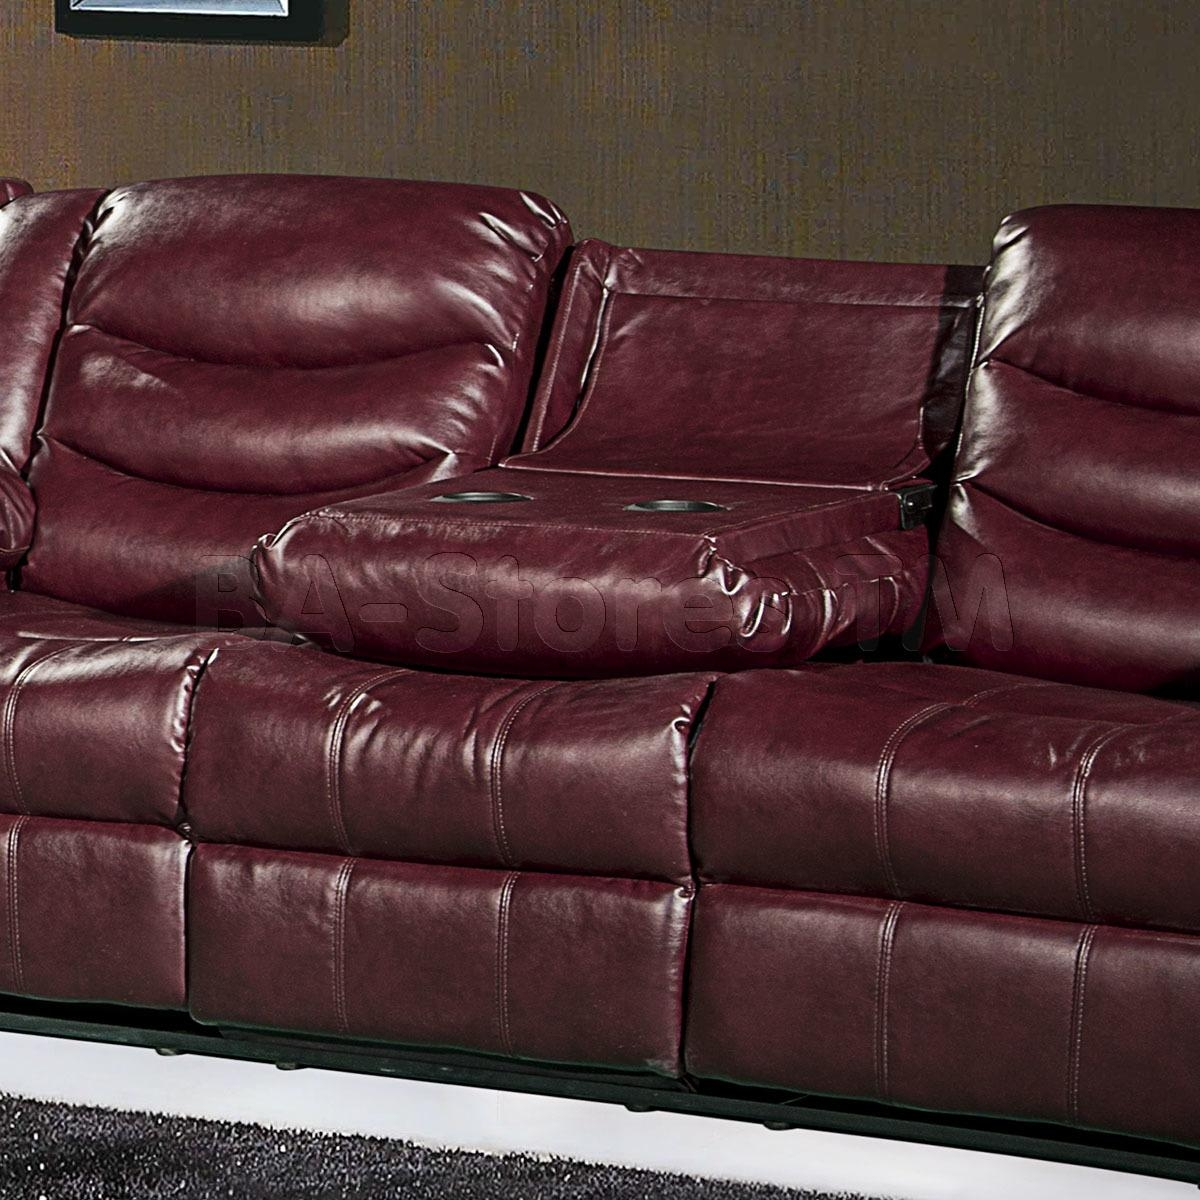 Meridian Furniture 644 Sectional Sofa | Burgundy | Sectional Sofas Within Burgundy Sectional Sofas (View 11 of 20)